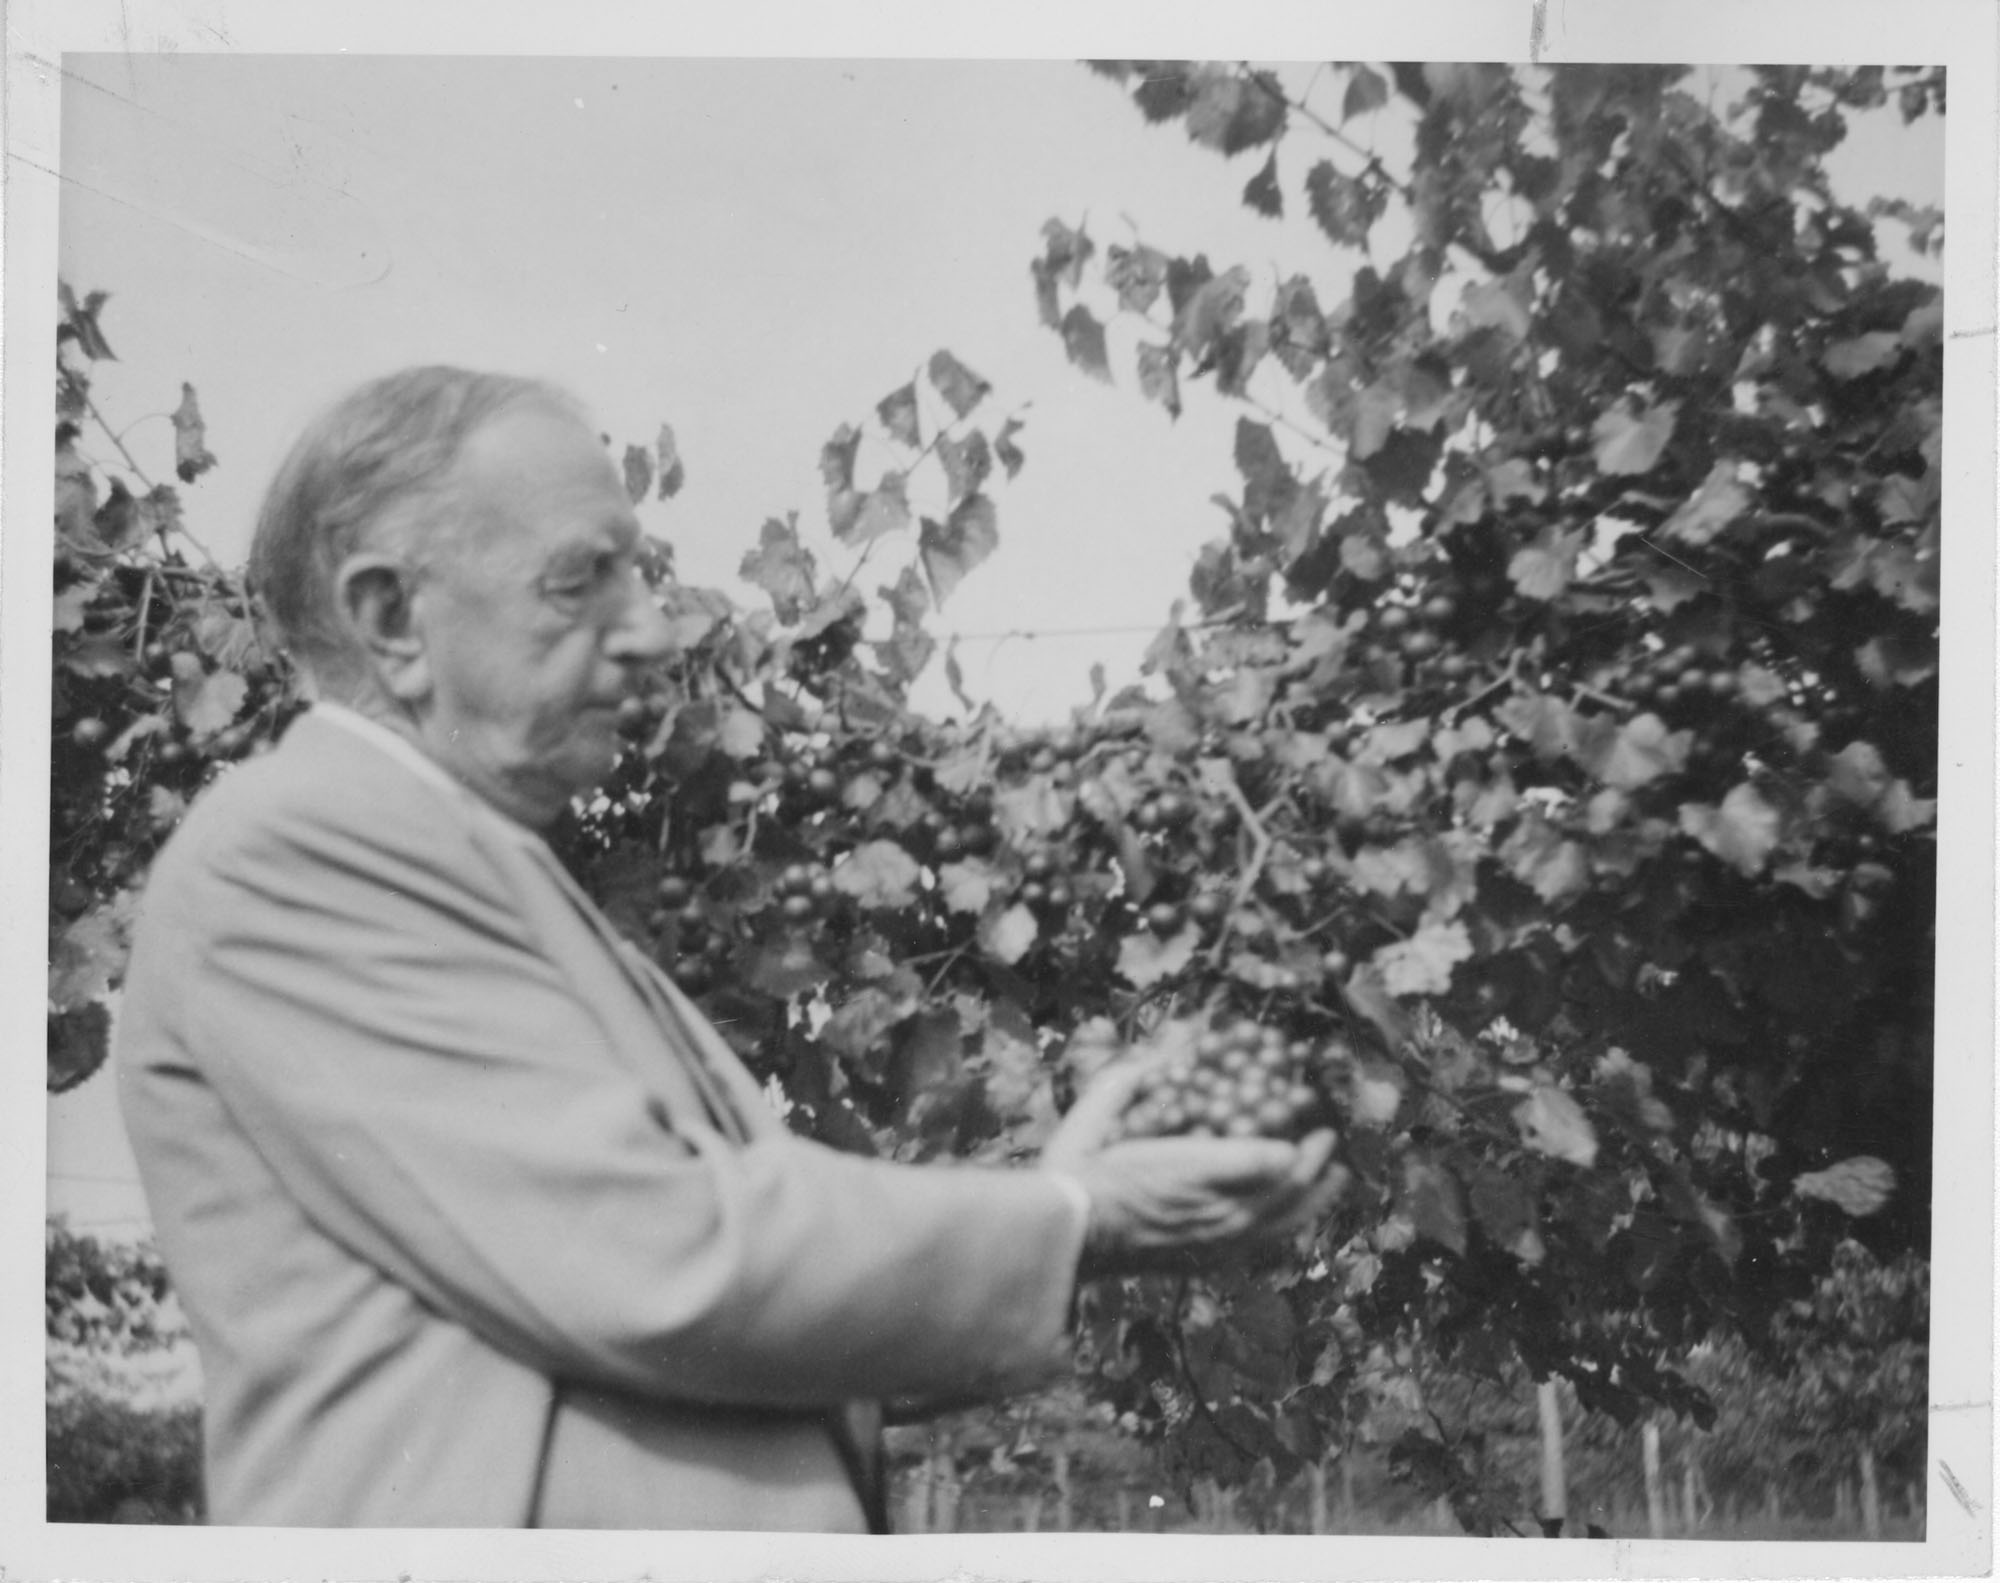 Man Holding Grapes